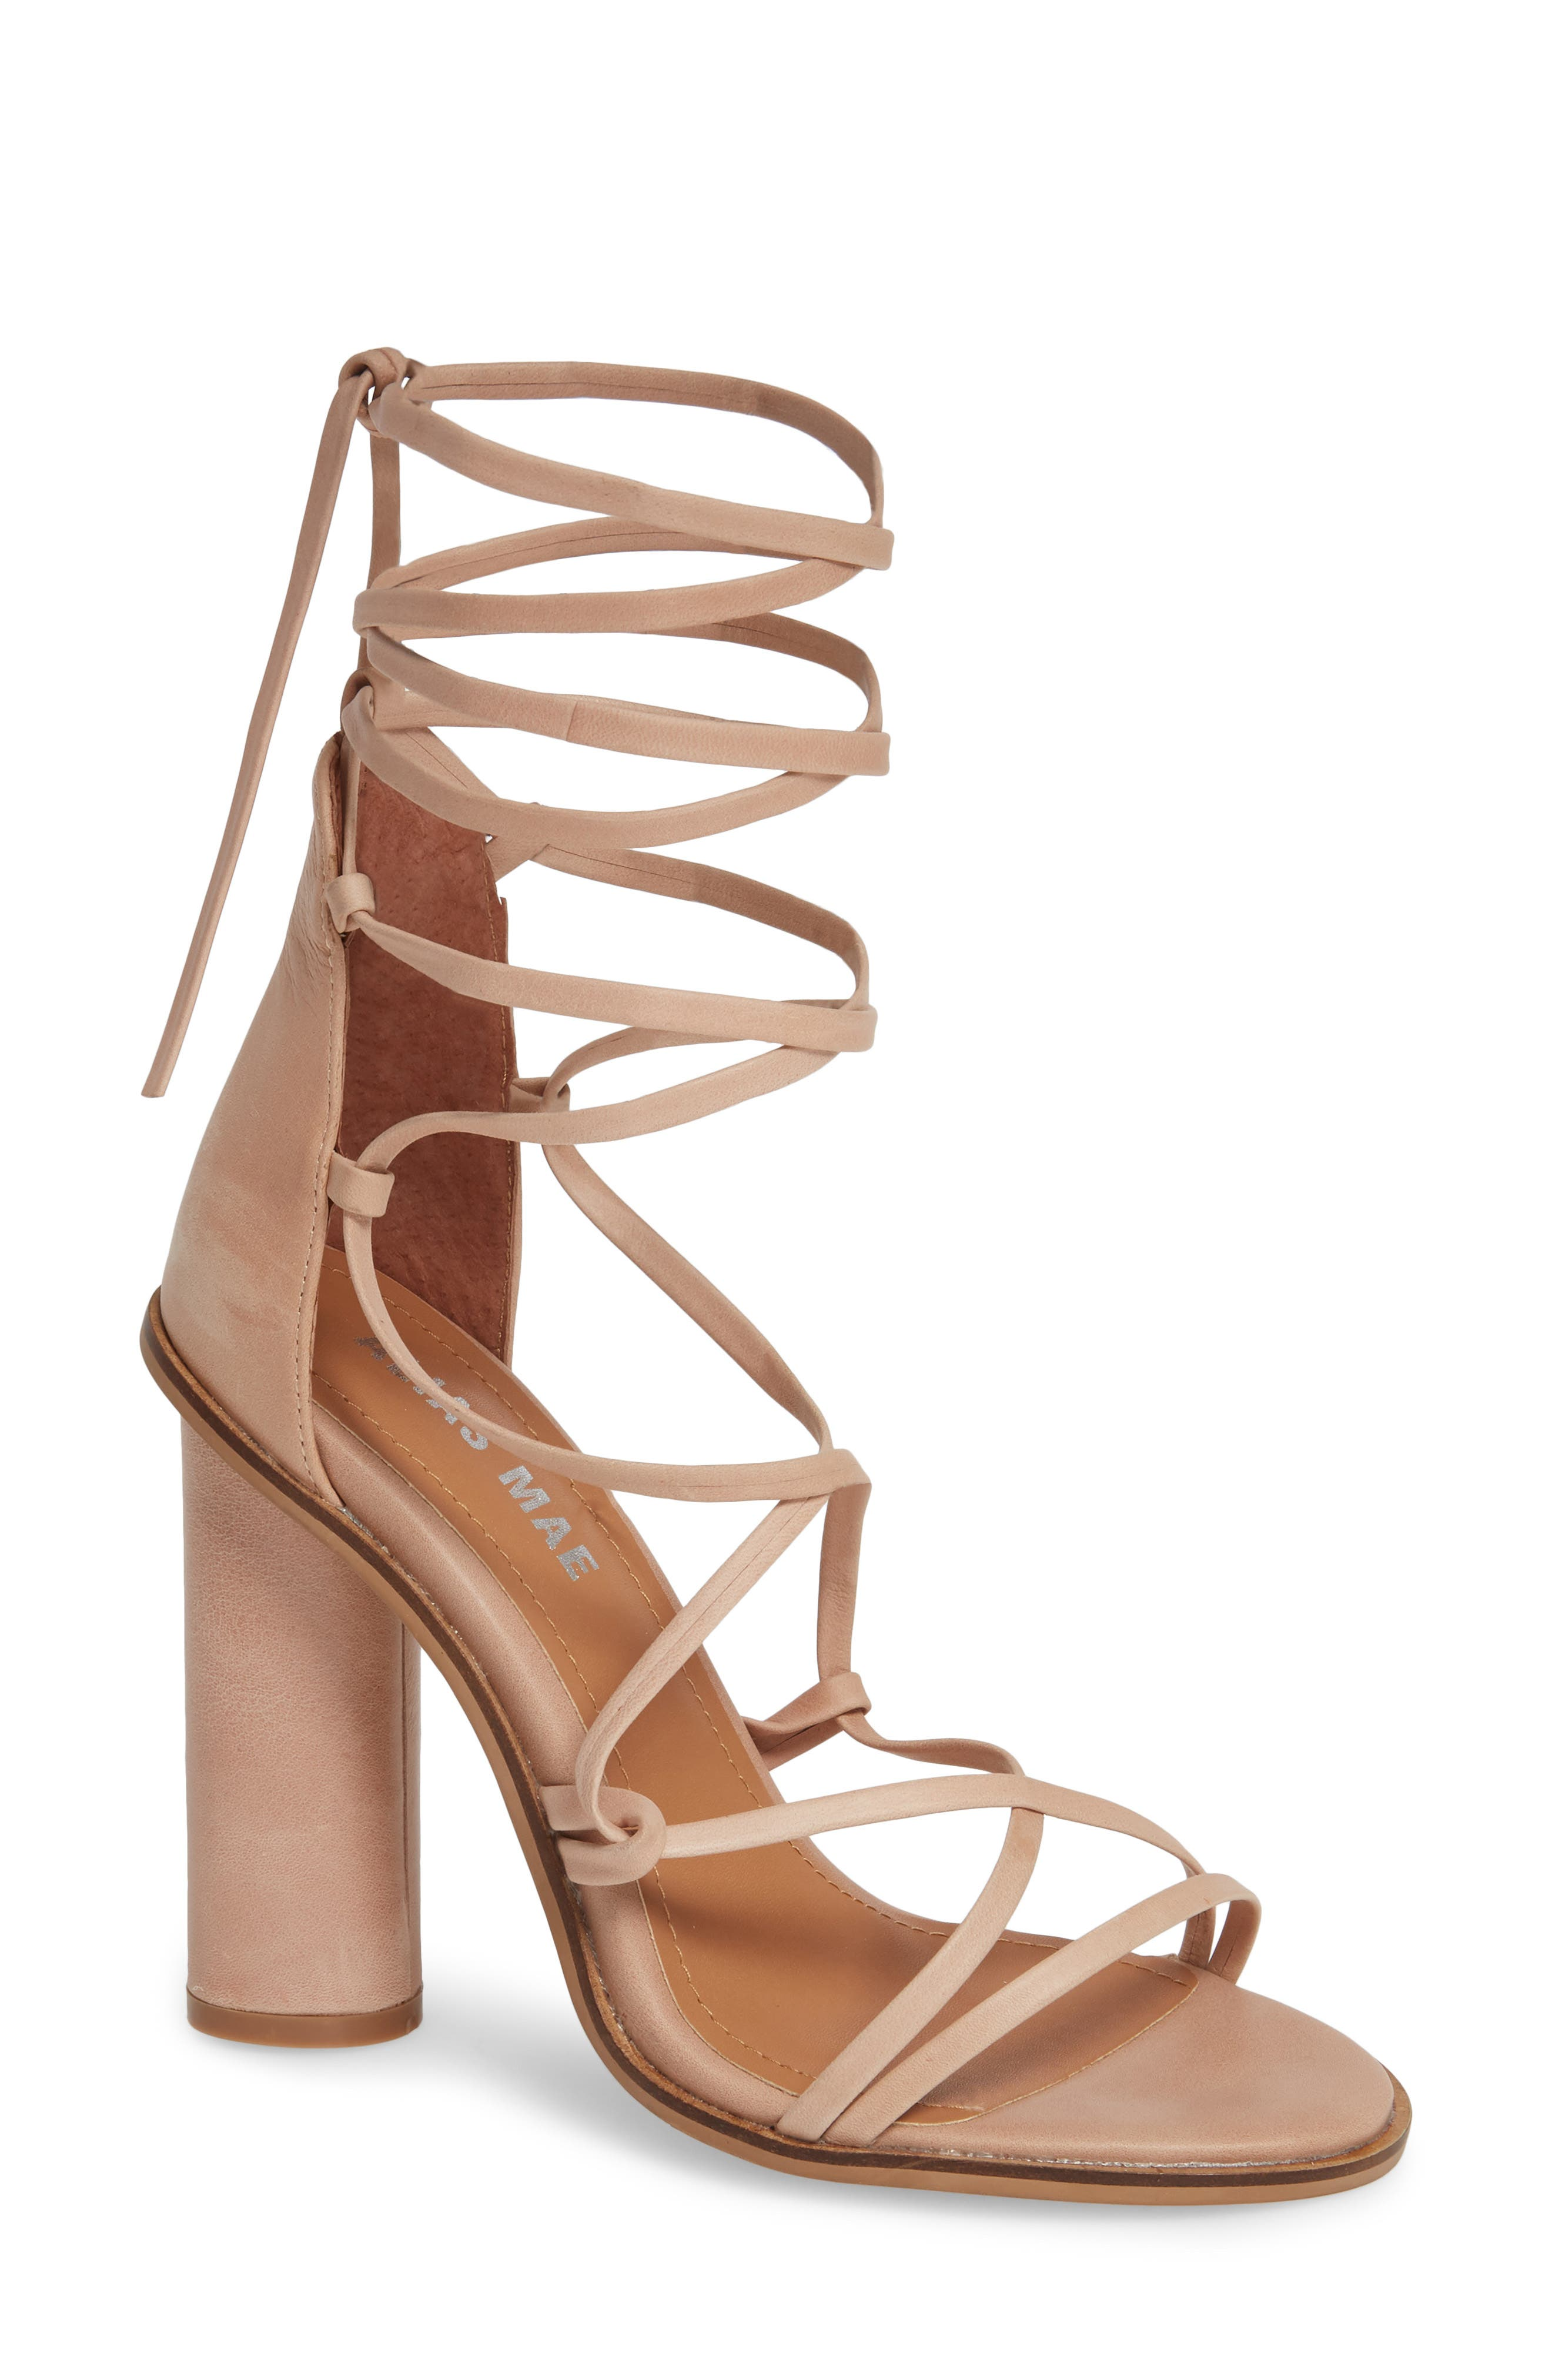 ALIAS MAE Amiyah Sandal in Brown